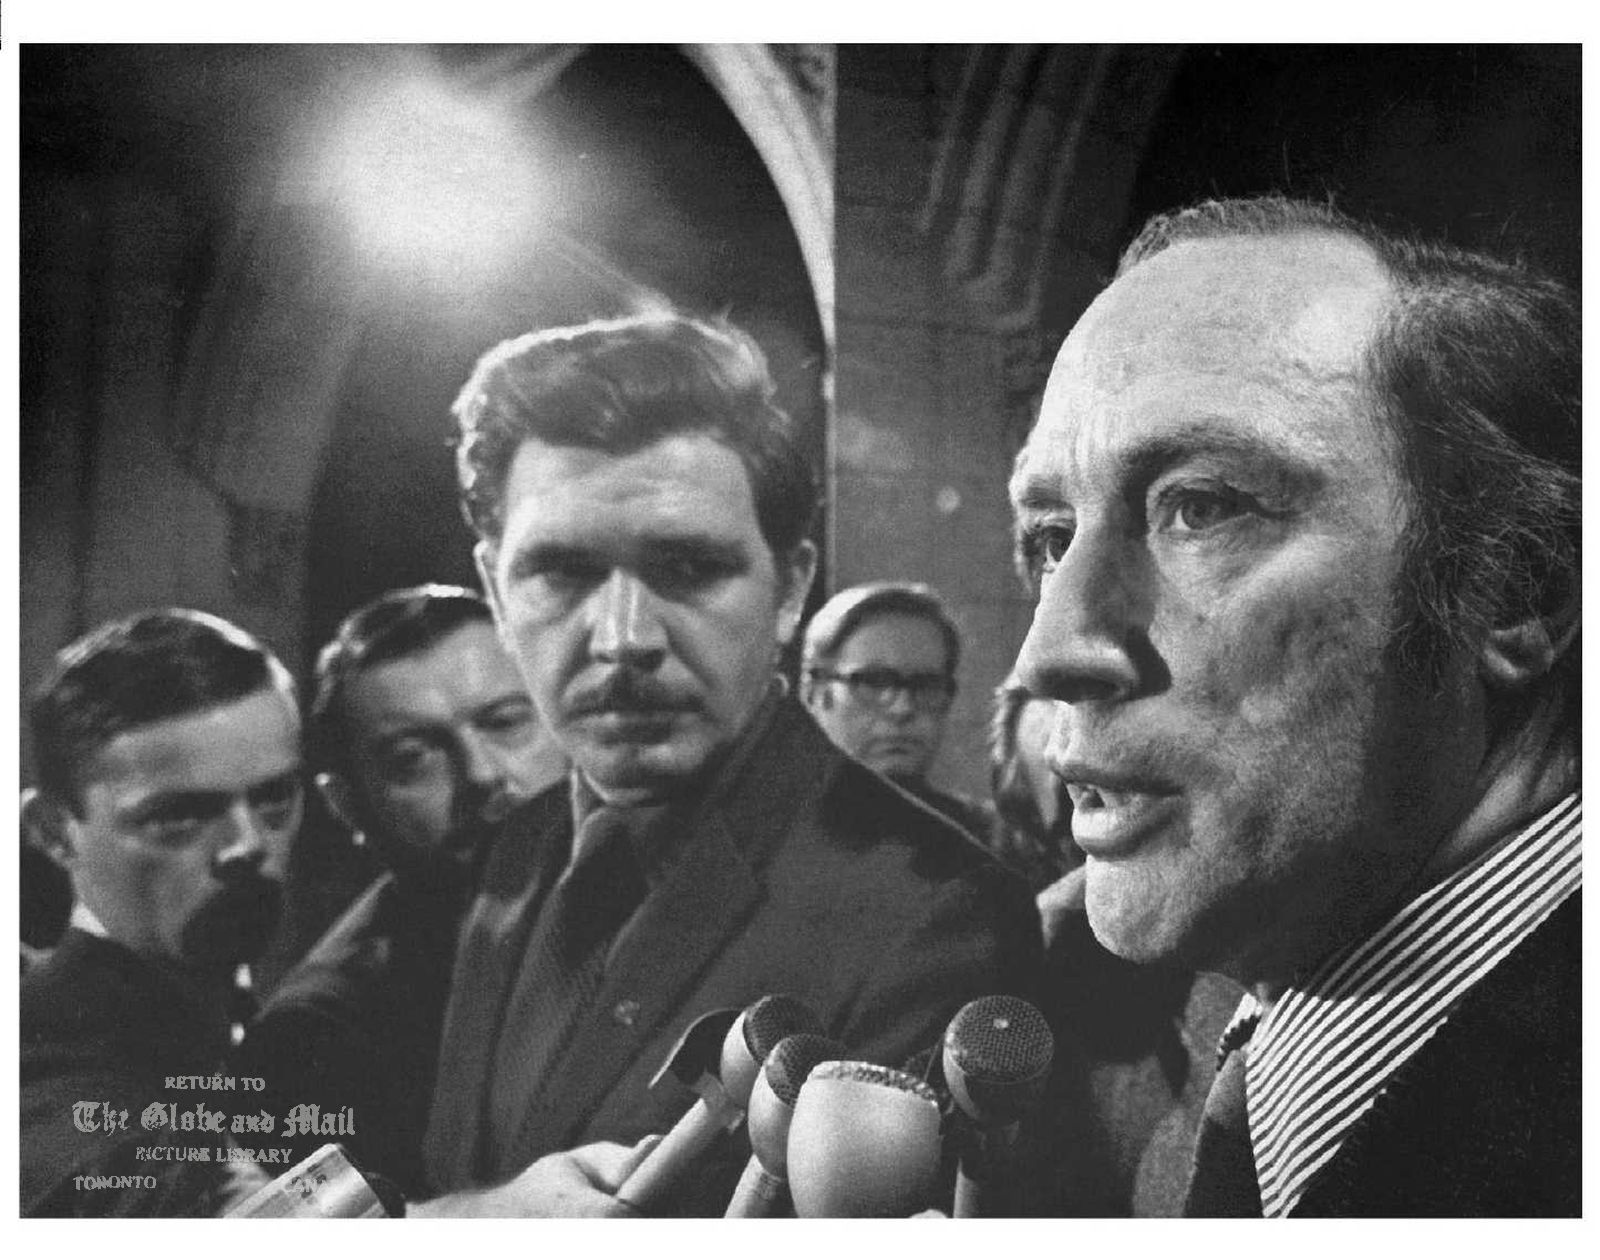 SEE WIRE STORY-AM-Trudeau-Anniversary (CPT6-Apr.19)--FLQ CRISIS--Thirty years ago Monday, Pierre Trudeau became Canada's 15th prime minister, arguably the most flamboyant and least forgettable. Trudeau updates reporters in Ottawa on the status of kidnapped British diplomat James Cross in this Dec. 3, 1970 file photo. (CP PHOTO) 1998 (Files-Staff-Chuck Mitchell) APR.24,2001 TUE FINAL NEWS-NATIONAL A8